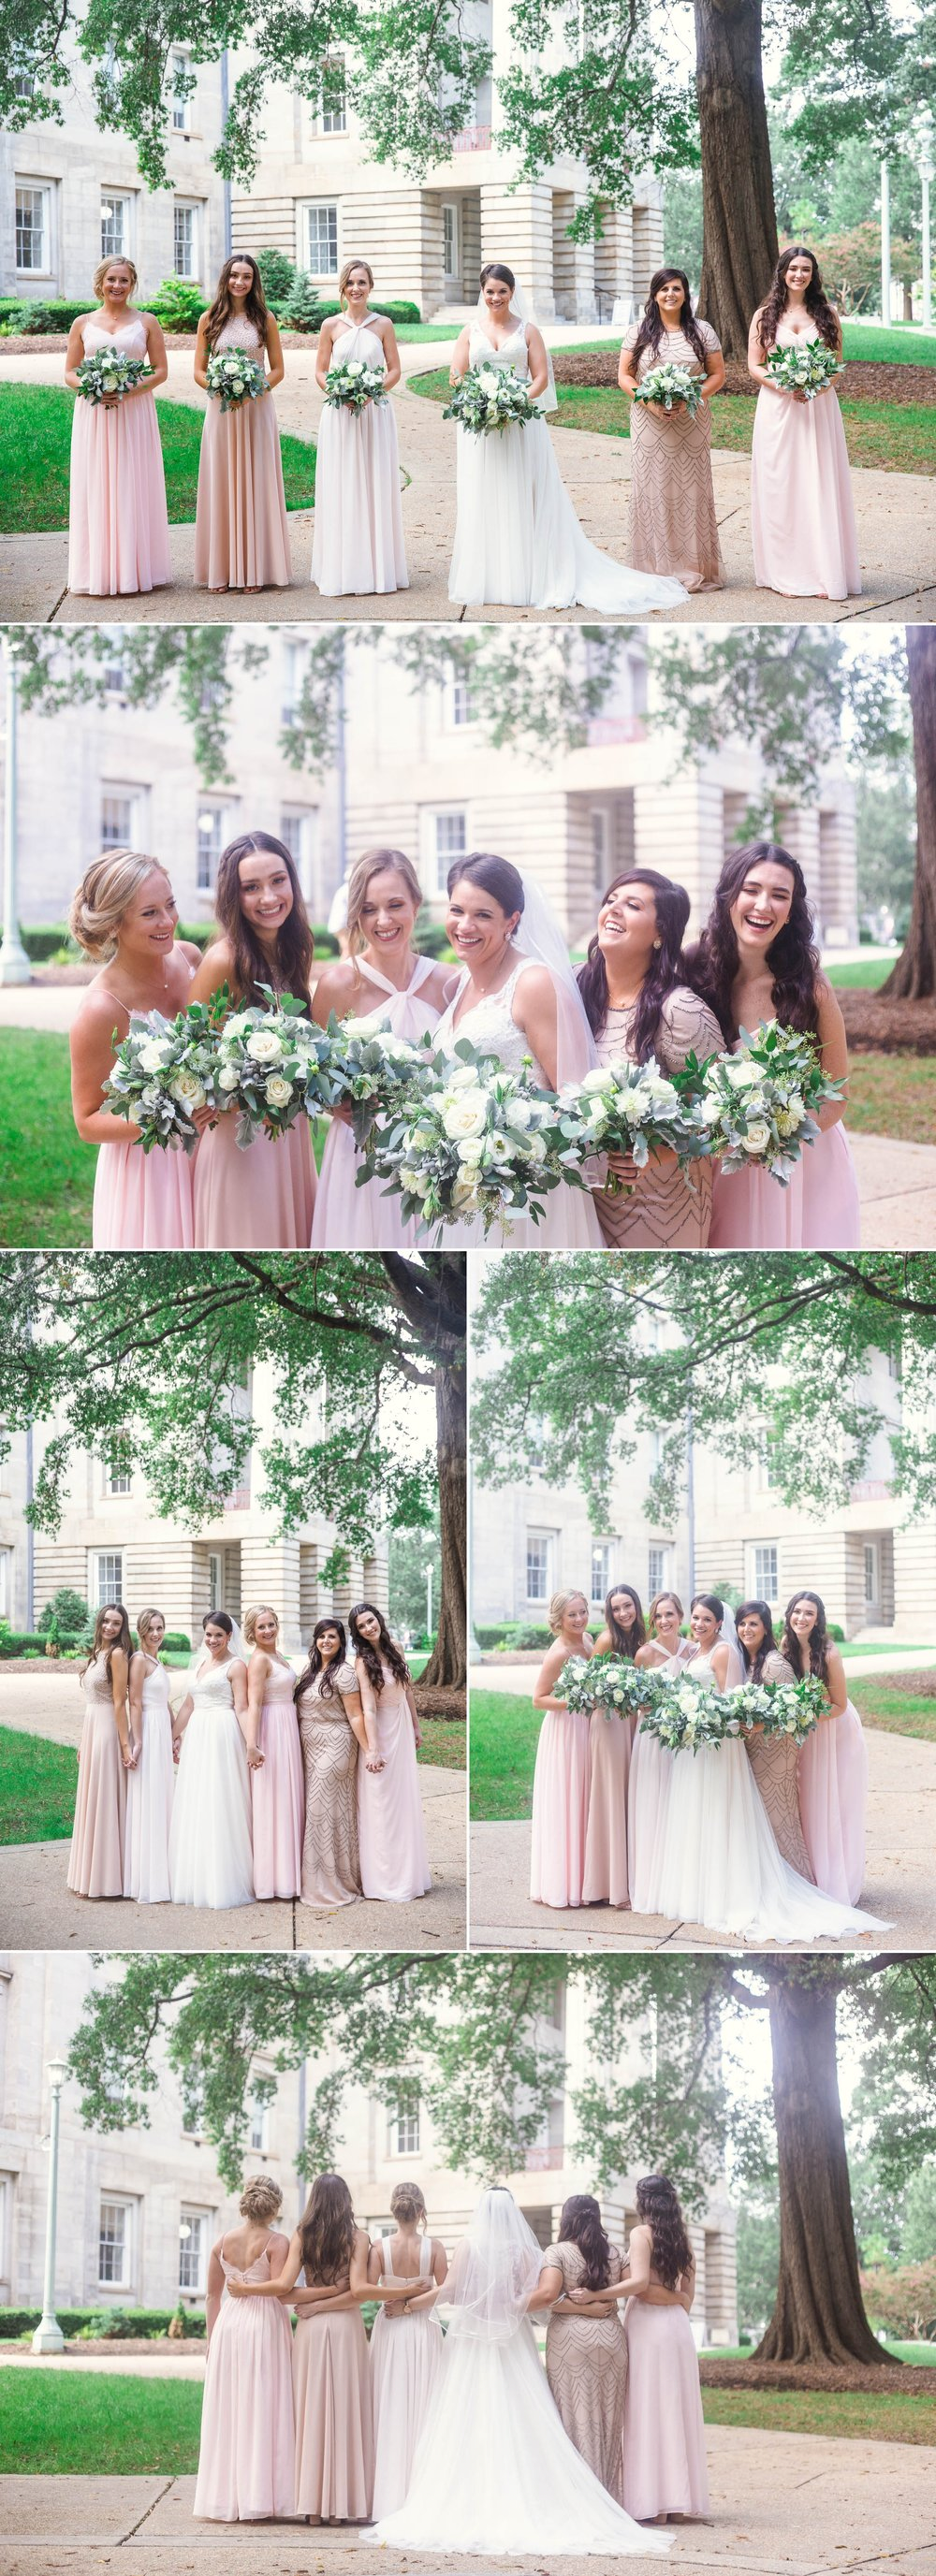 Bridesmaids portraits at moore square downtown - Clare + Wallace - The Jiddy Space - Raleigh North Carolina Wedding Photographer